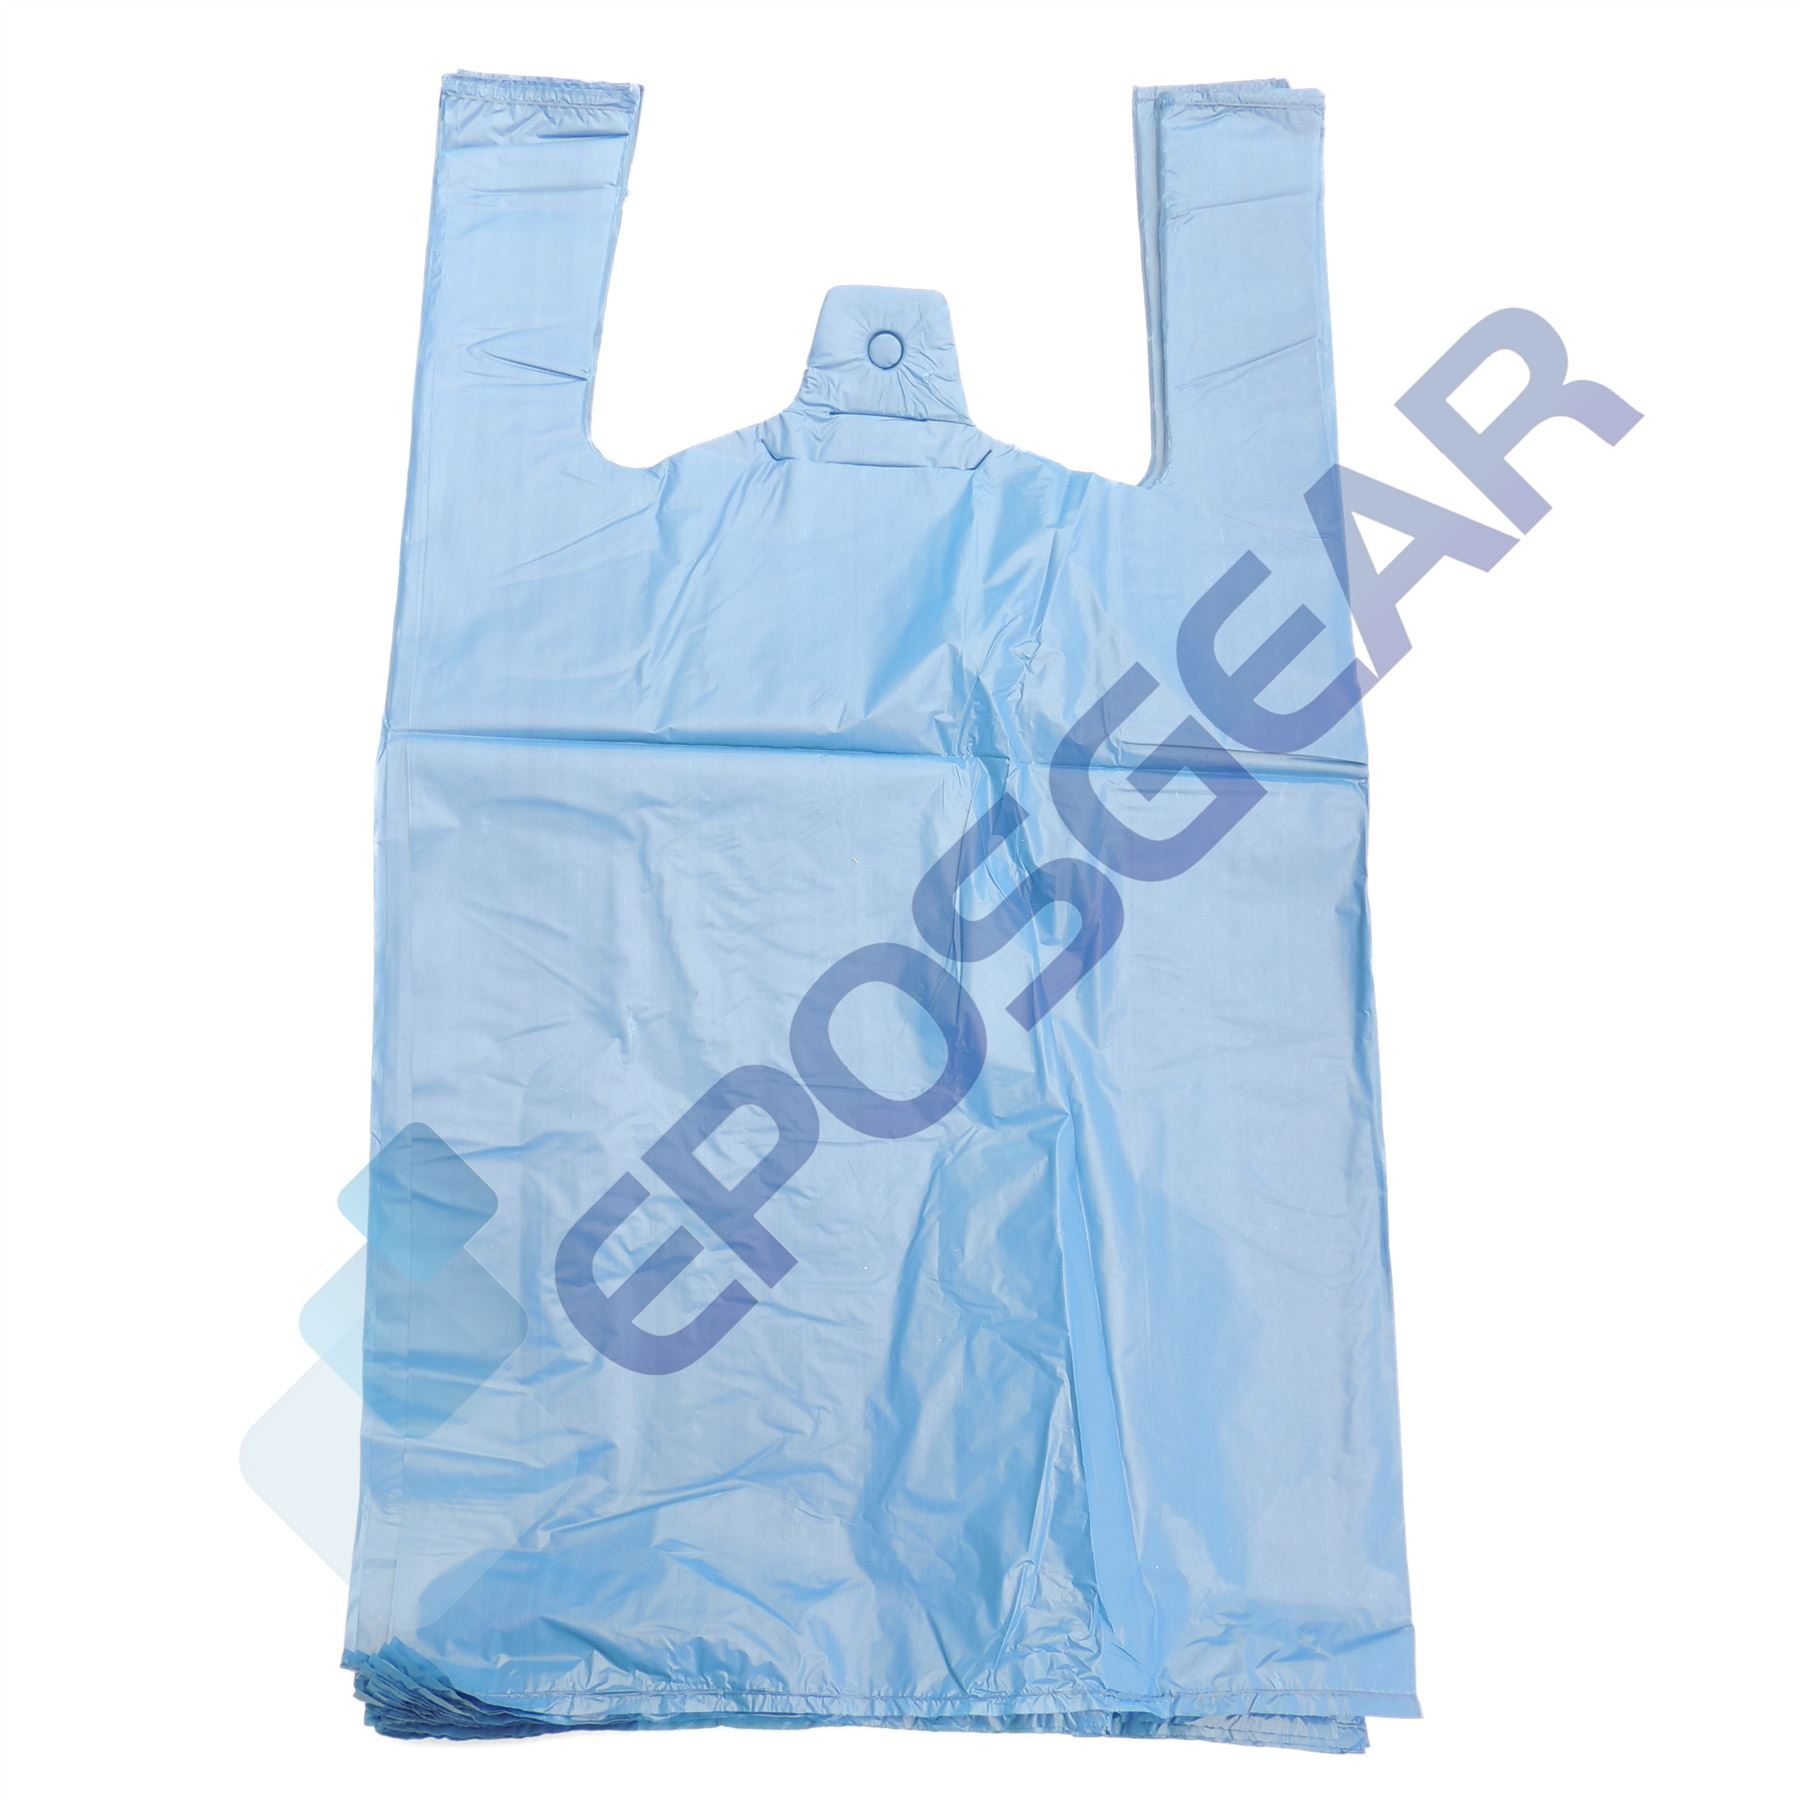 Strong Carrier Bags Vest Shopping Carrier Bags